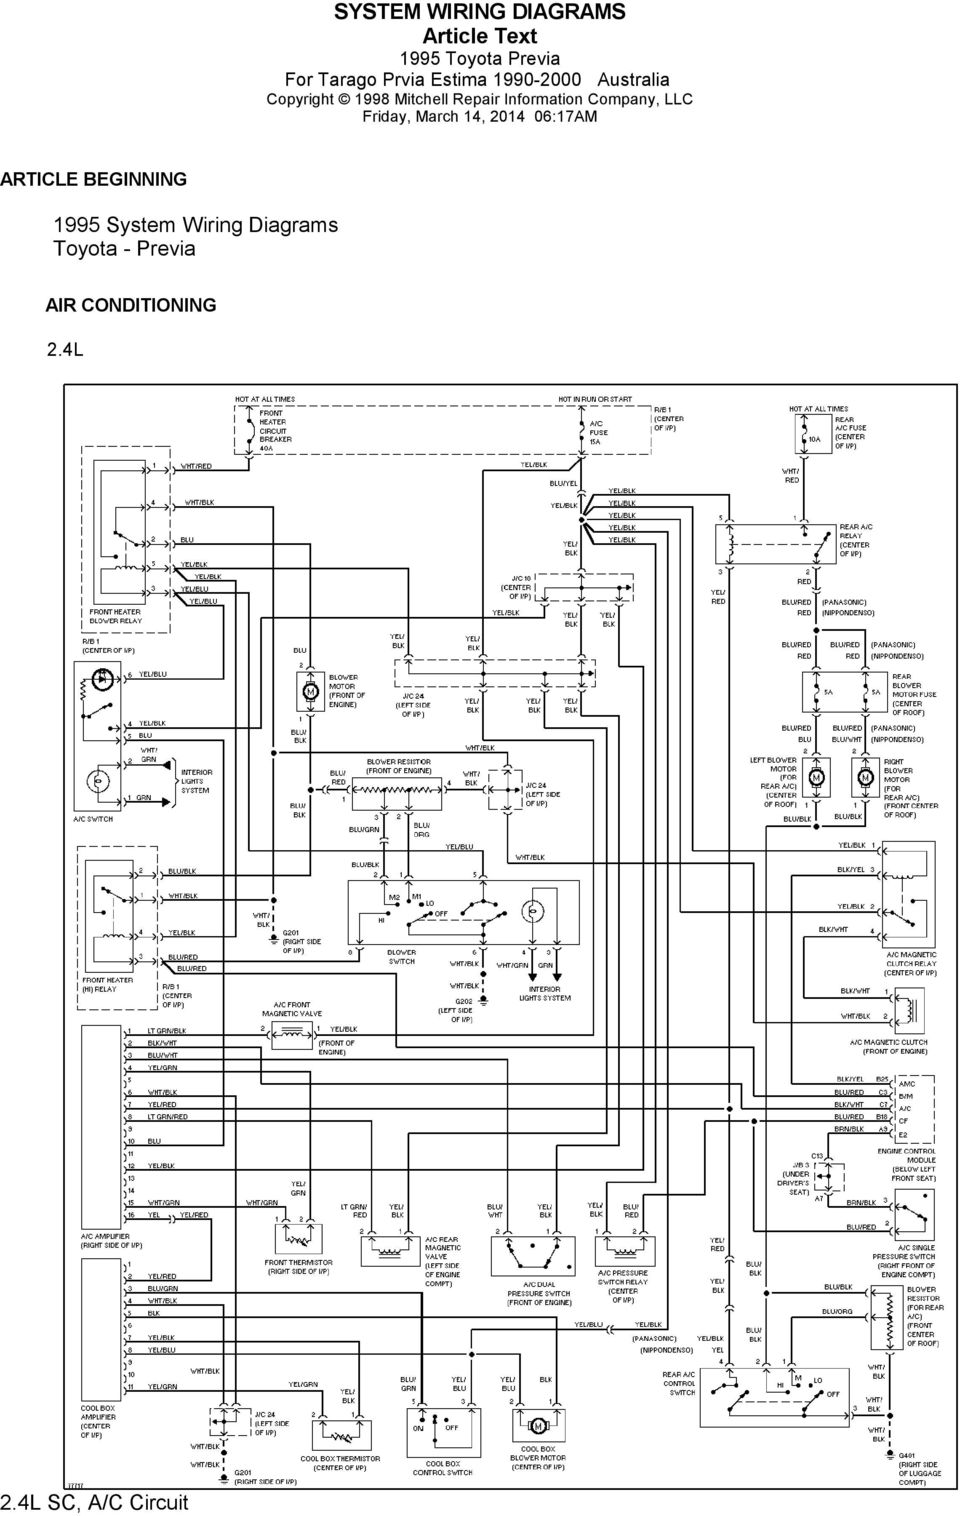 Haflinger Wiring Schematic Diagram Schematics 2013 Subaru Wrx Interior Diagrams Toyota Previa Electrical Starting Know About 4l80e To